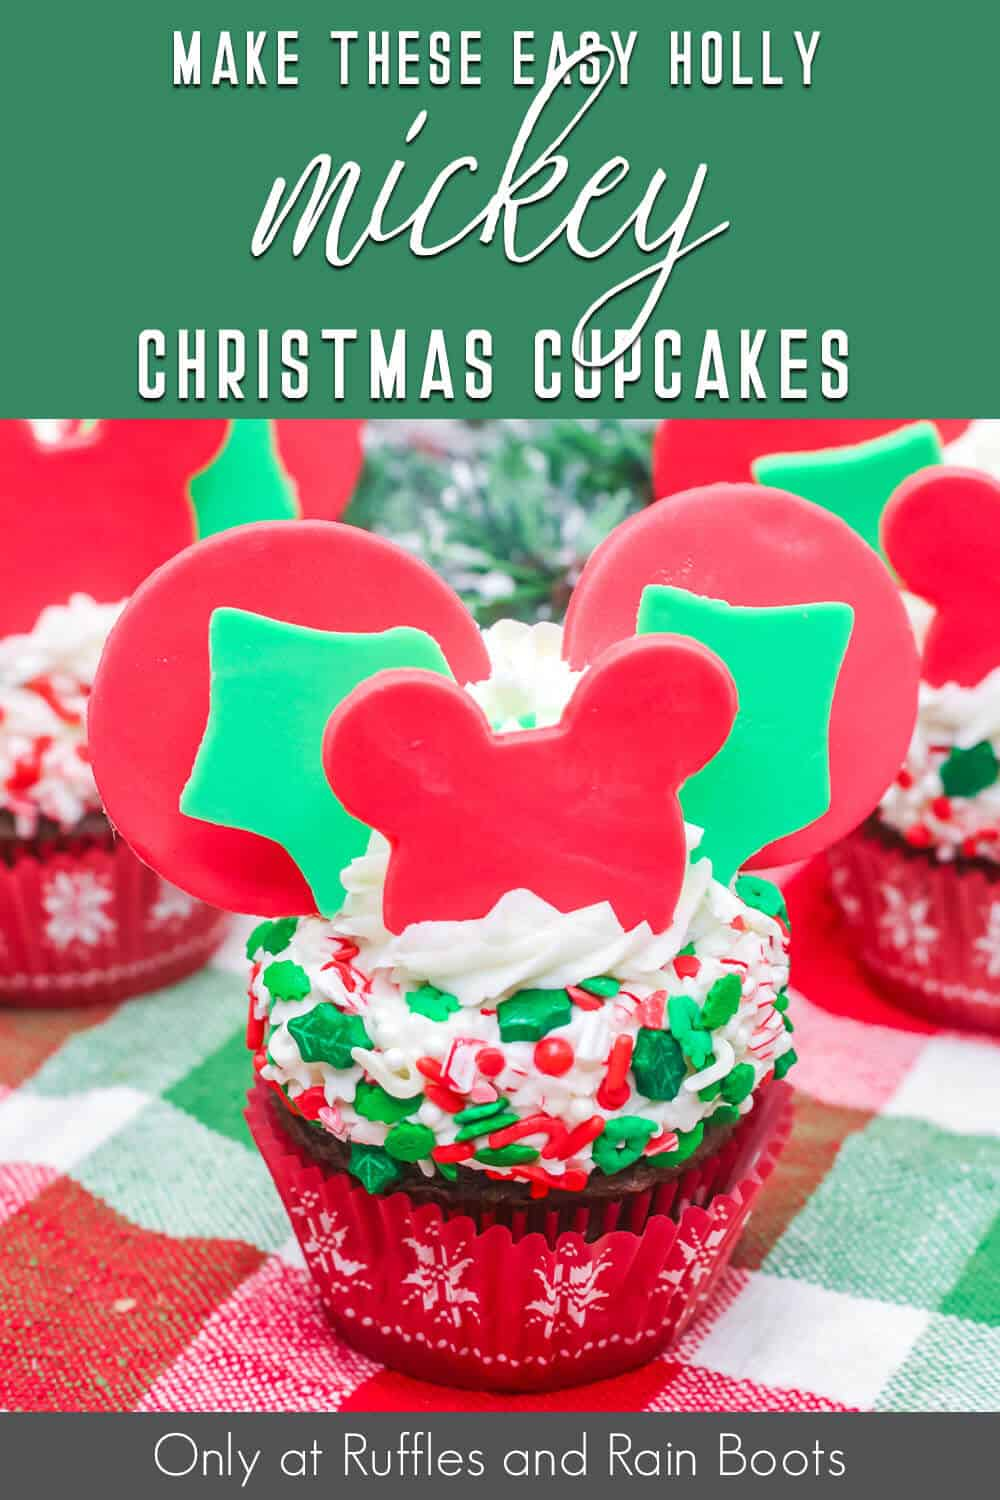 mickey christmas cupcakes recipe with text which reads make these easy holly mickey christmas cupcakes